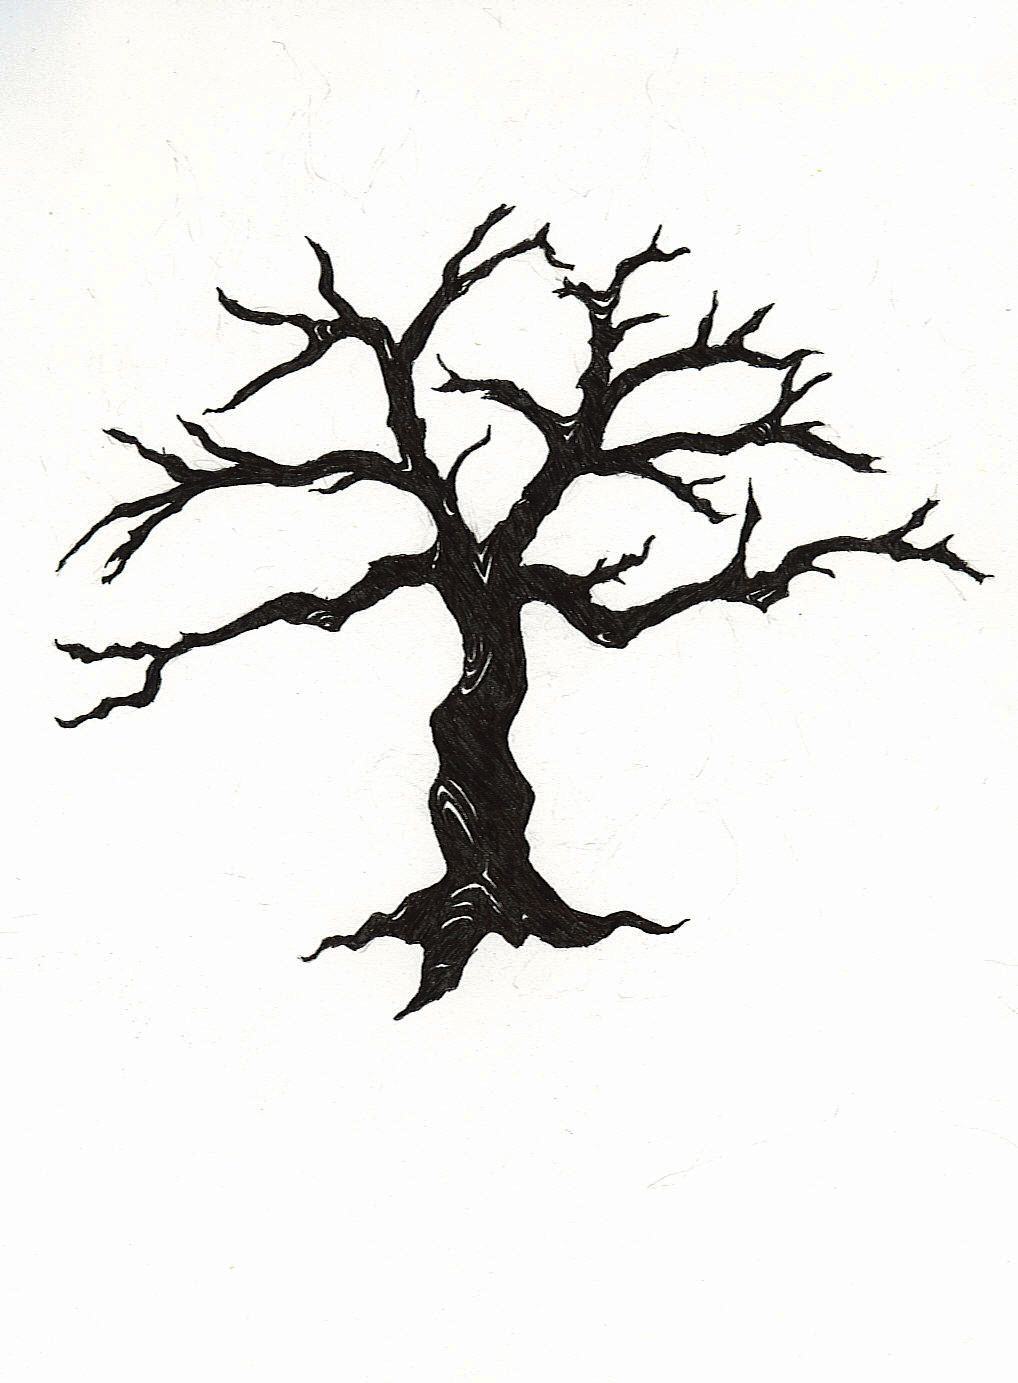 dead tree silhouette clip art at getdrawings com free for personal rh getdrawings com dead tree clipart